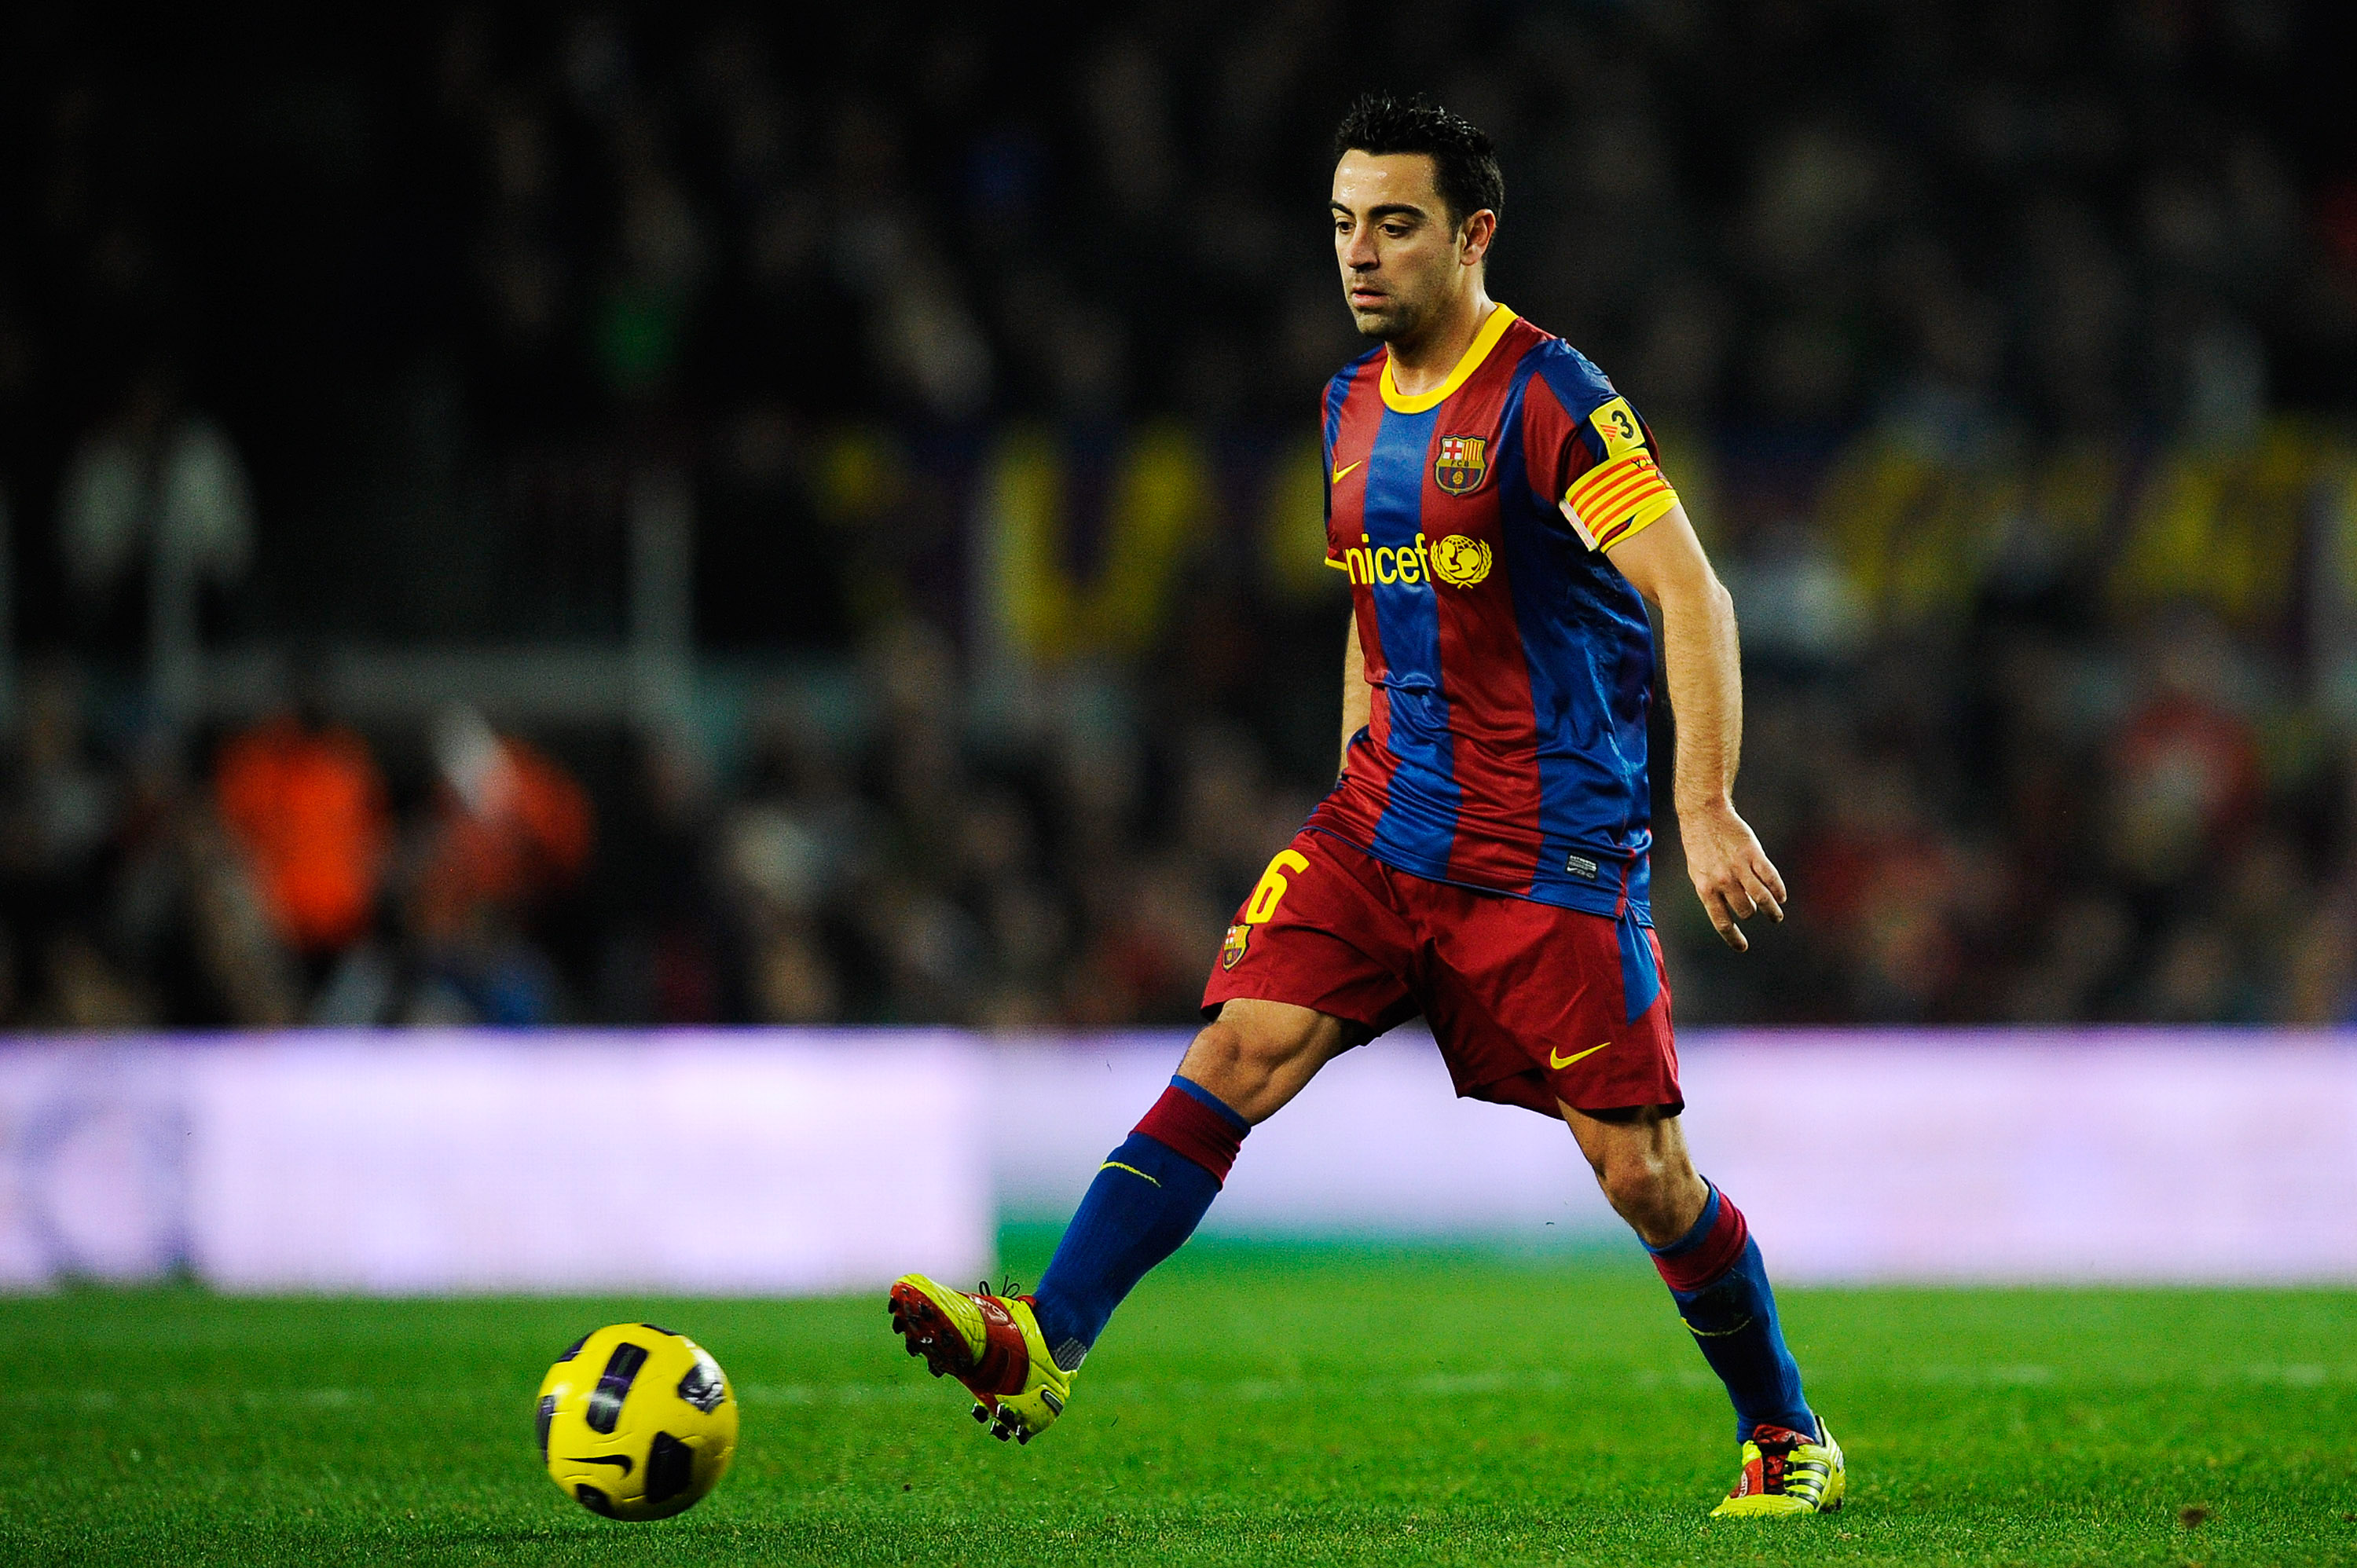 BARCELONA, SPAIN - JANUARY 02:  Xavi Hernandez of Barcelona passes the ball during the La Liga match between Barcelona and Levante UD at Camp Nou on January 2, 2011 in Barcelona, Spain. Barcelona won 2-1. Xavi Hernandez is set to make Barcelona history af